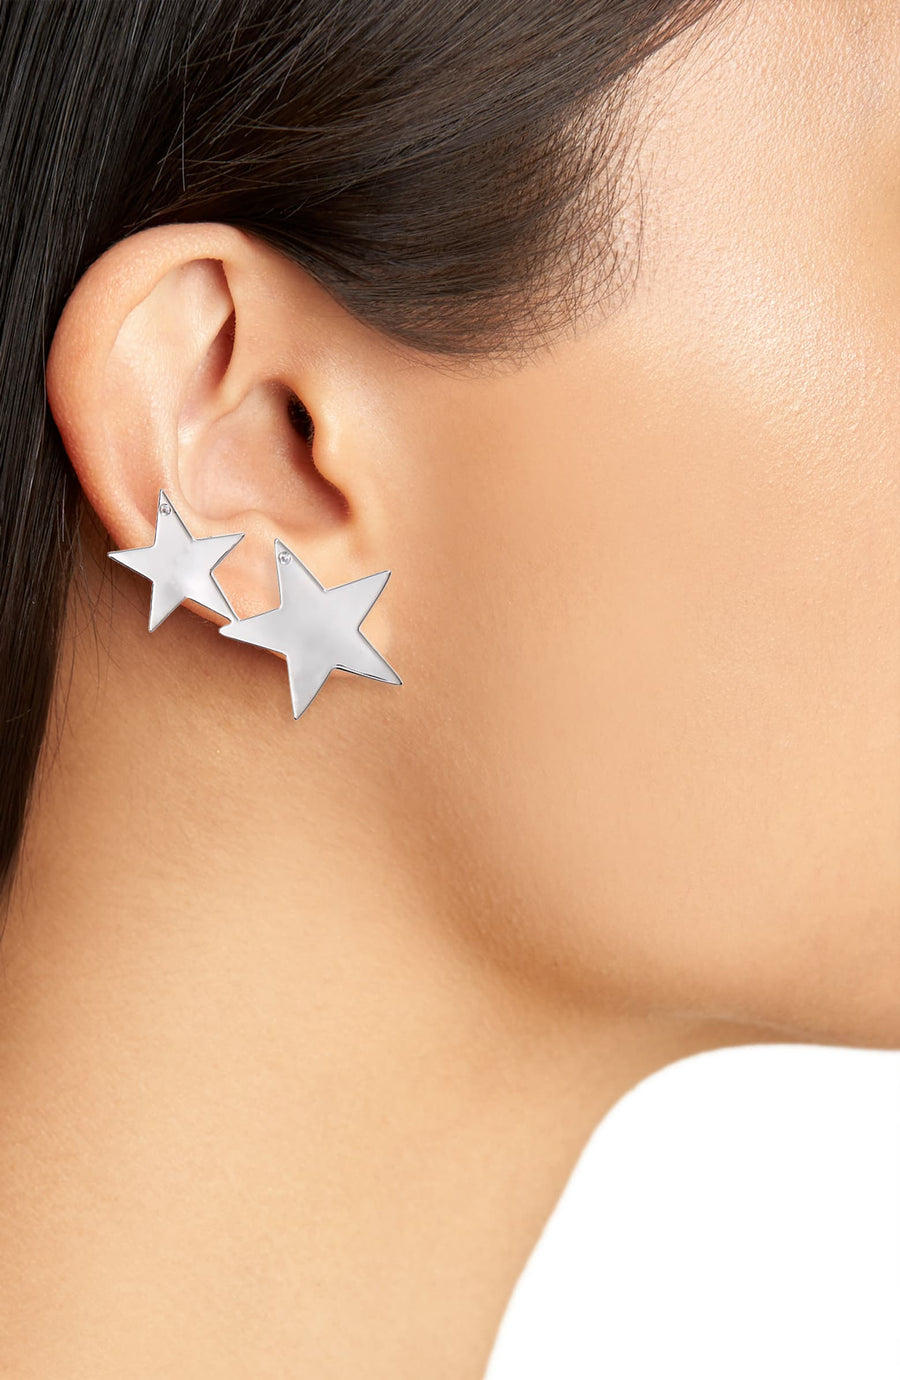 TRI-STAR EARRING & CUFF SET